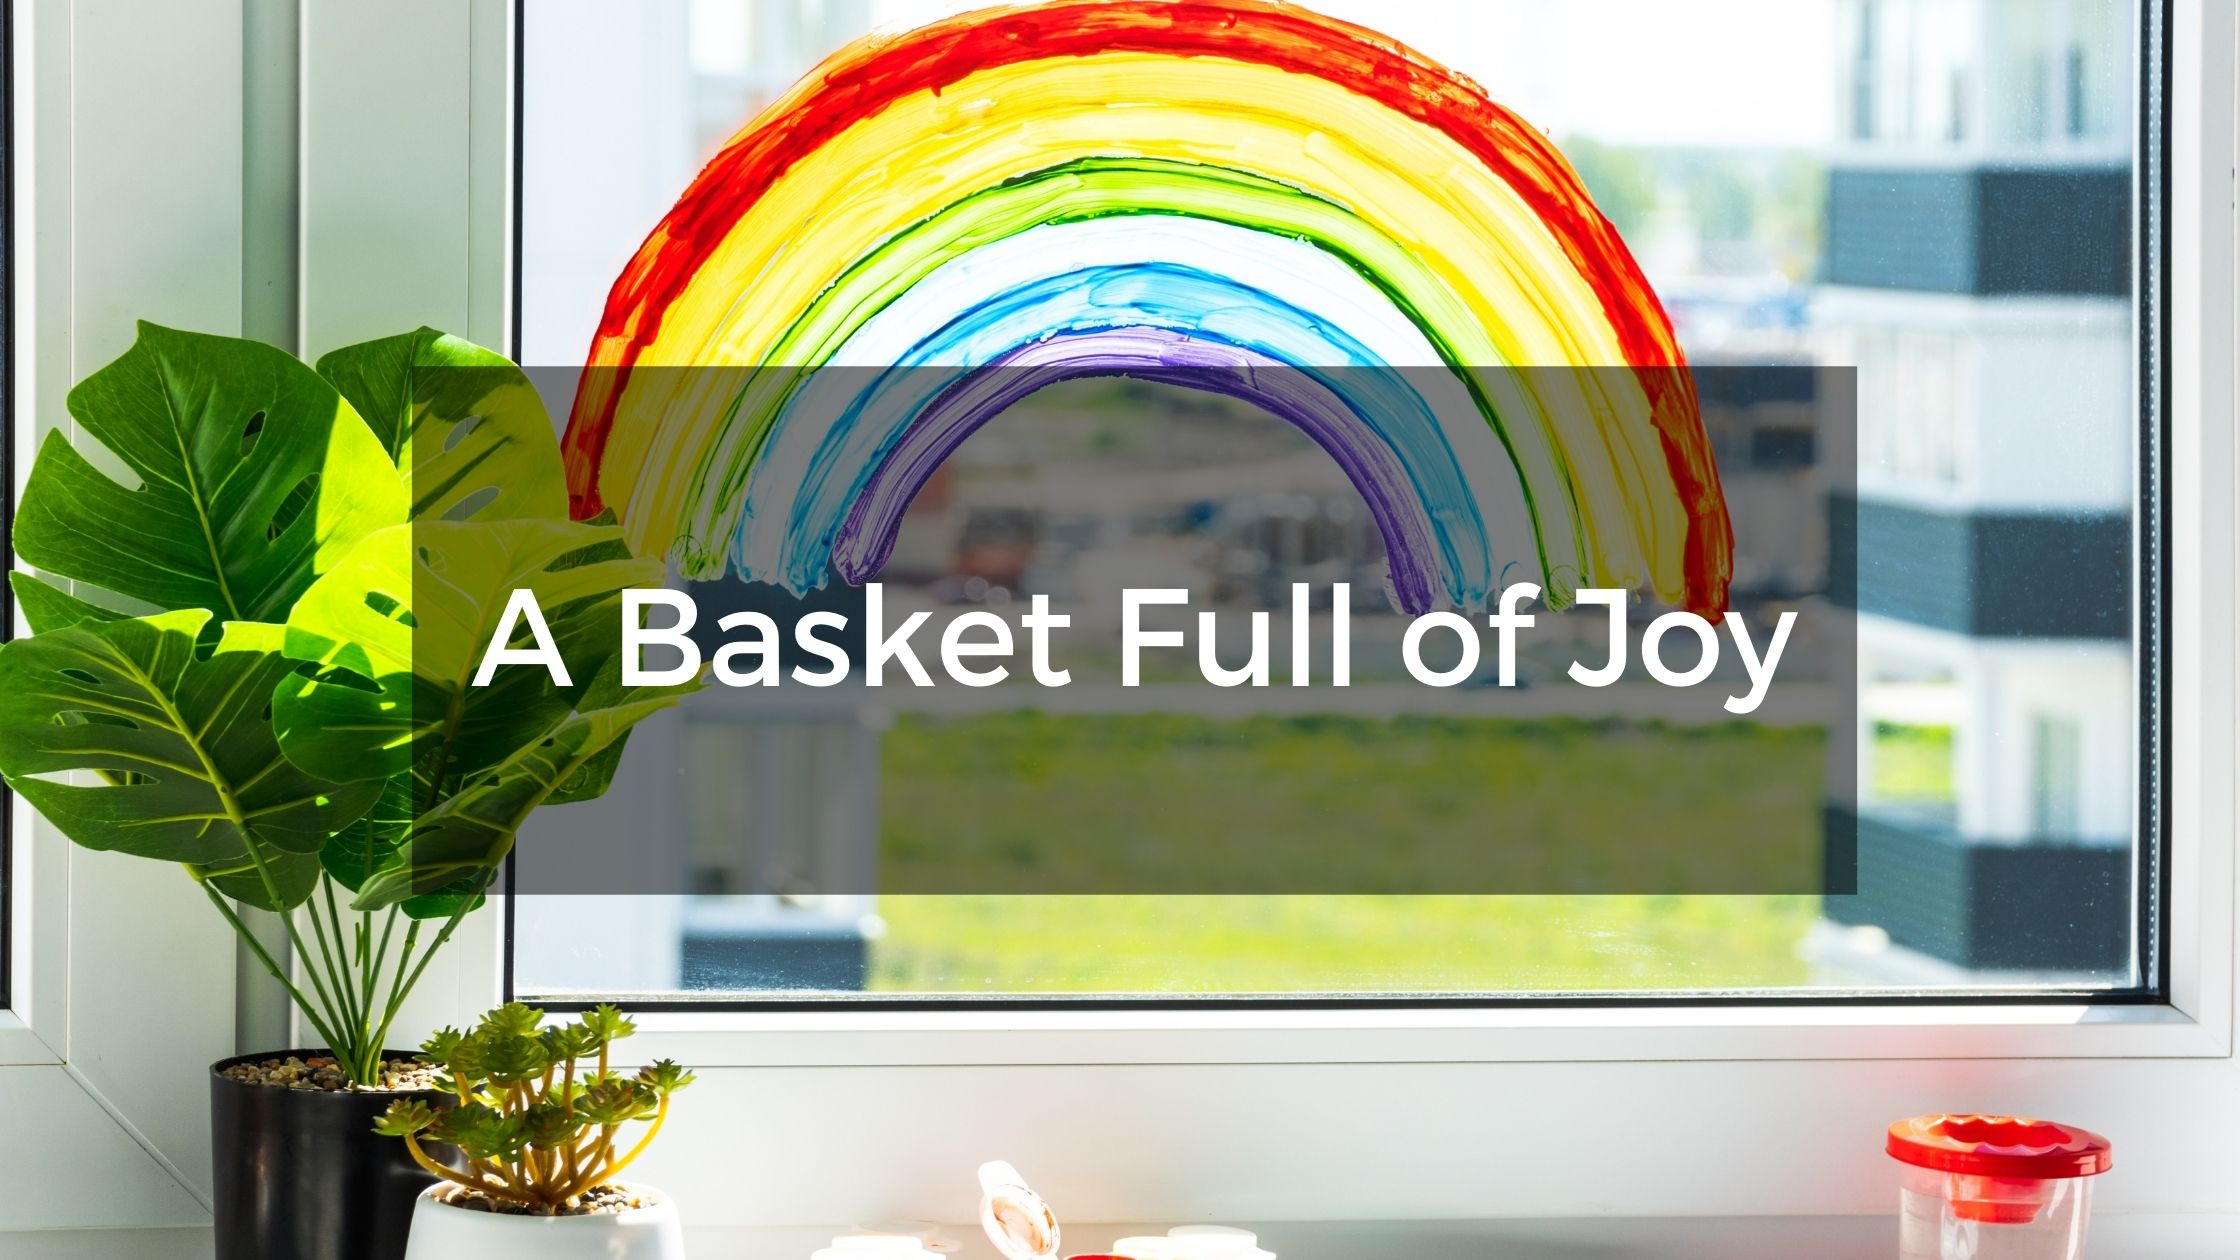 A Basket Full of Joy - When We All Need it Most